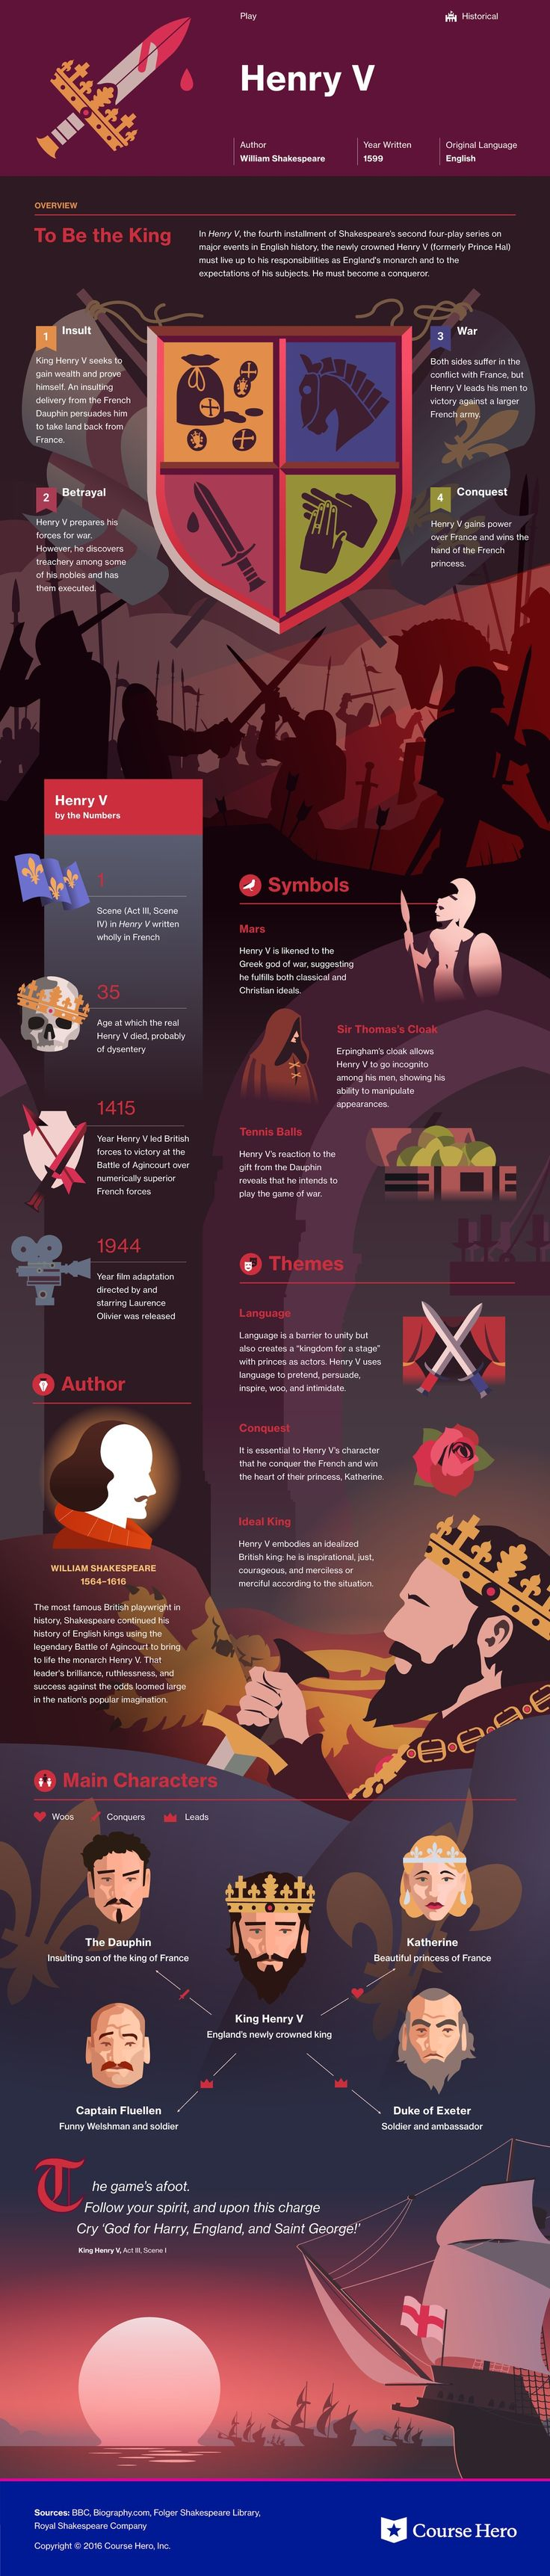 best images about book infographics heart of check out study guide for william shakespeare s henry v including scene summary character analysis and more learn all about henry v ask questions